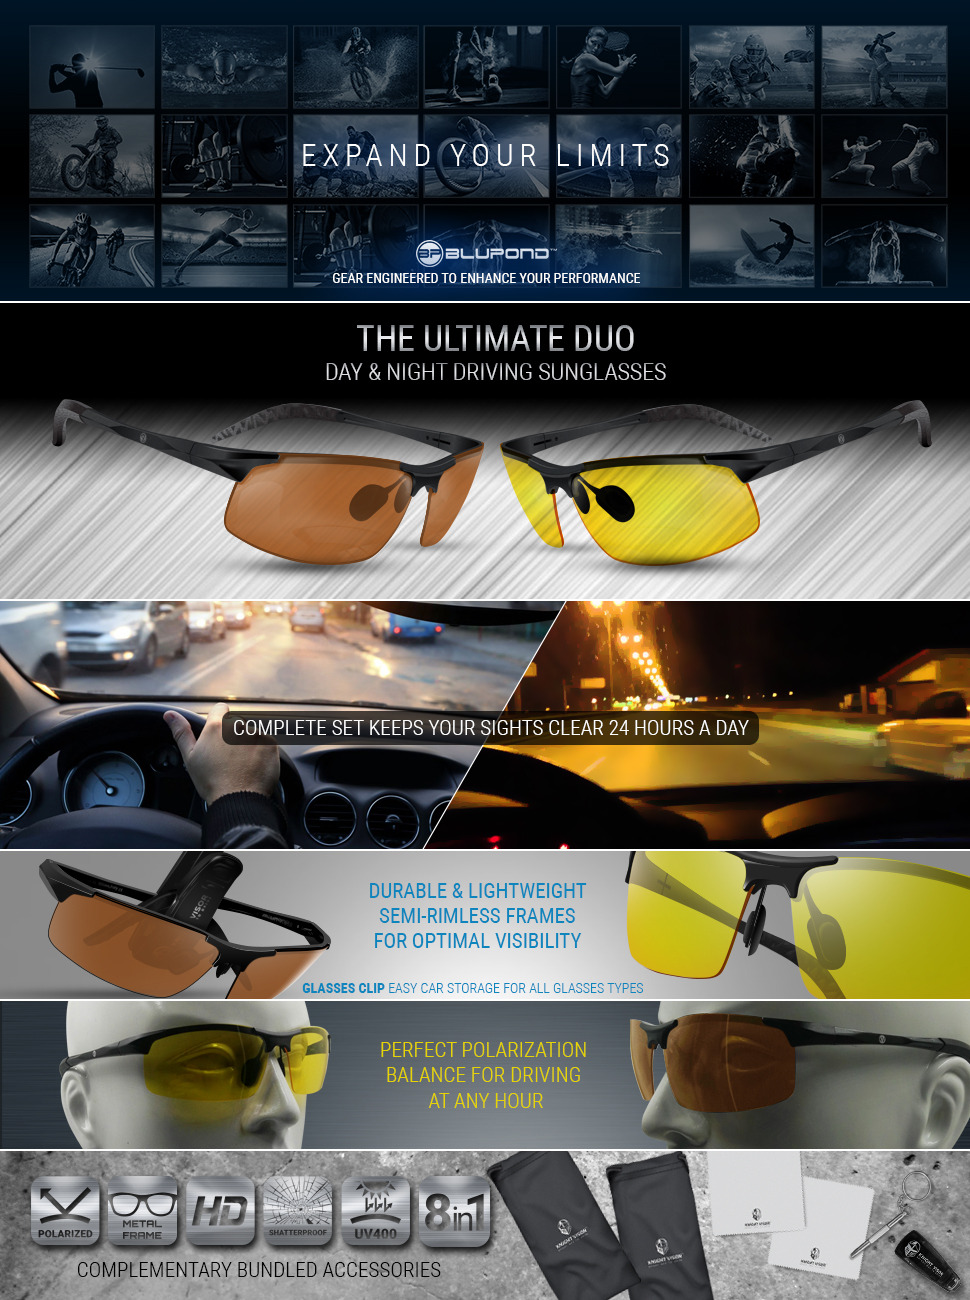 e85df63f2a0 BLUPOND Set of 2 Anti-Glare HD Vision Sunglasses - Daytime Polarized Copper  and Yellow Tint Night Driving Glasses with CAR Clip Holder - Knight Visor